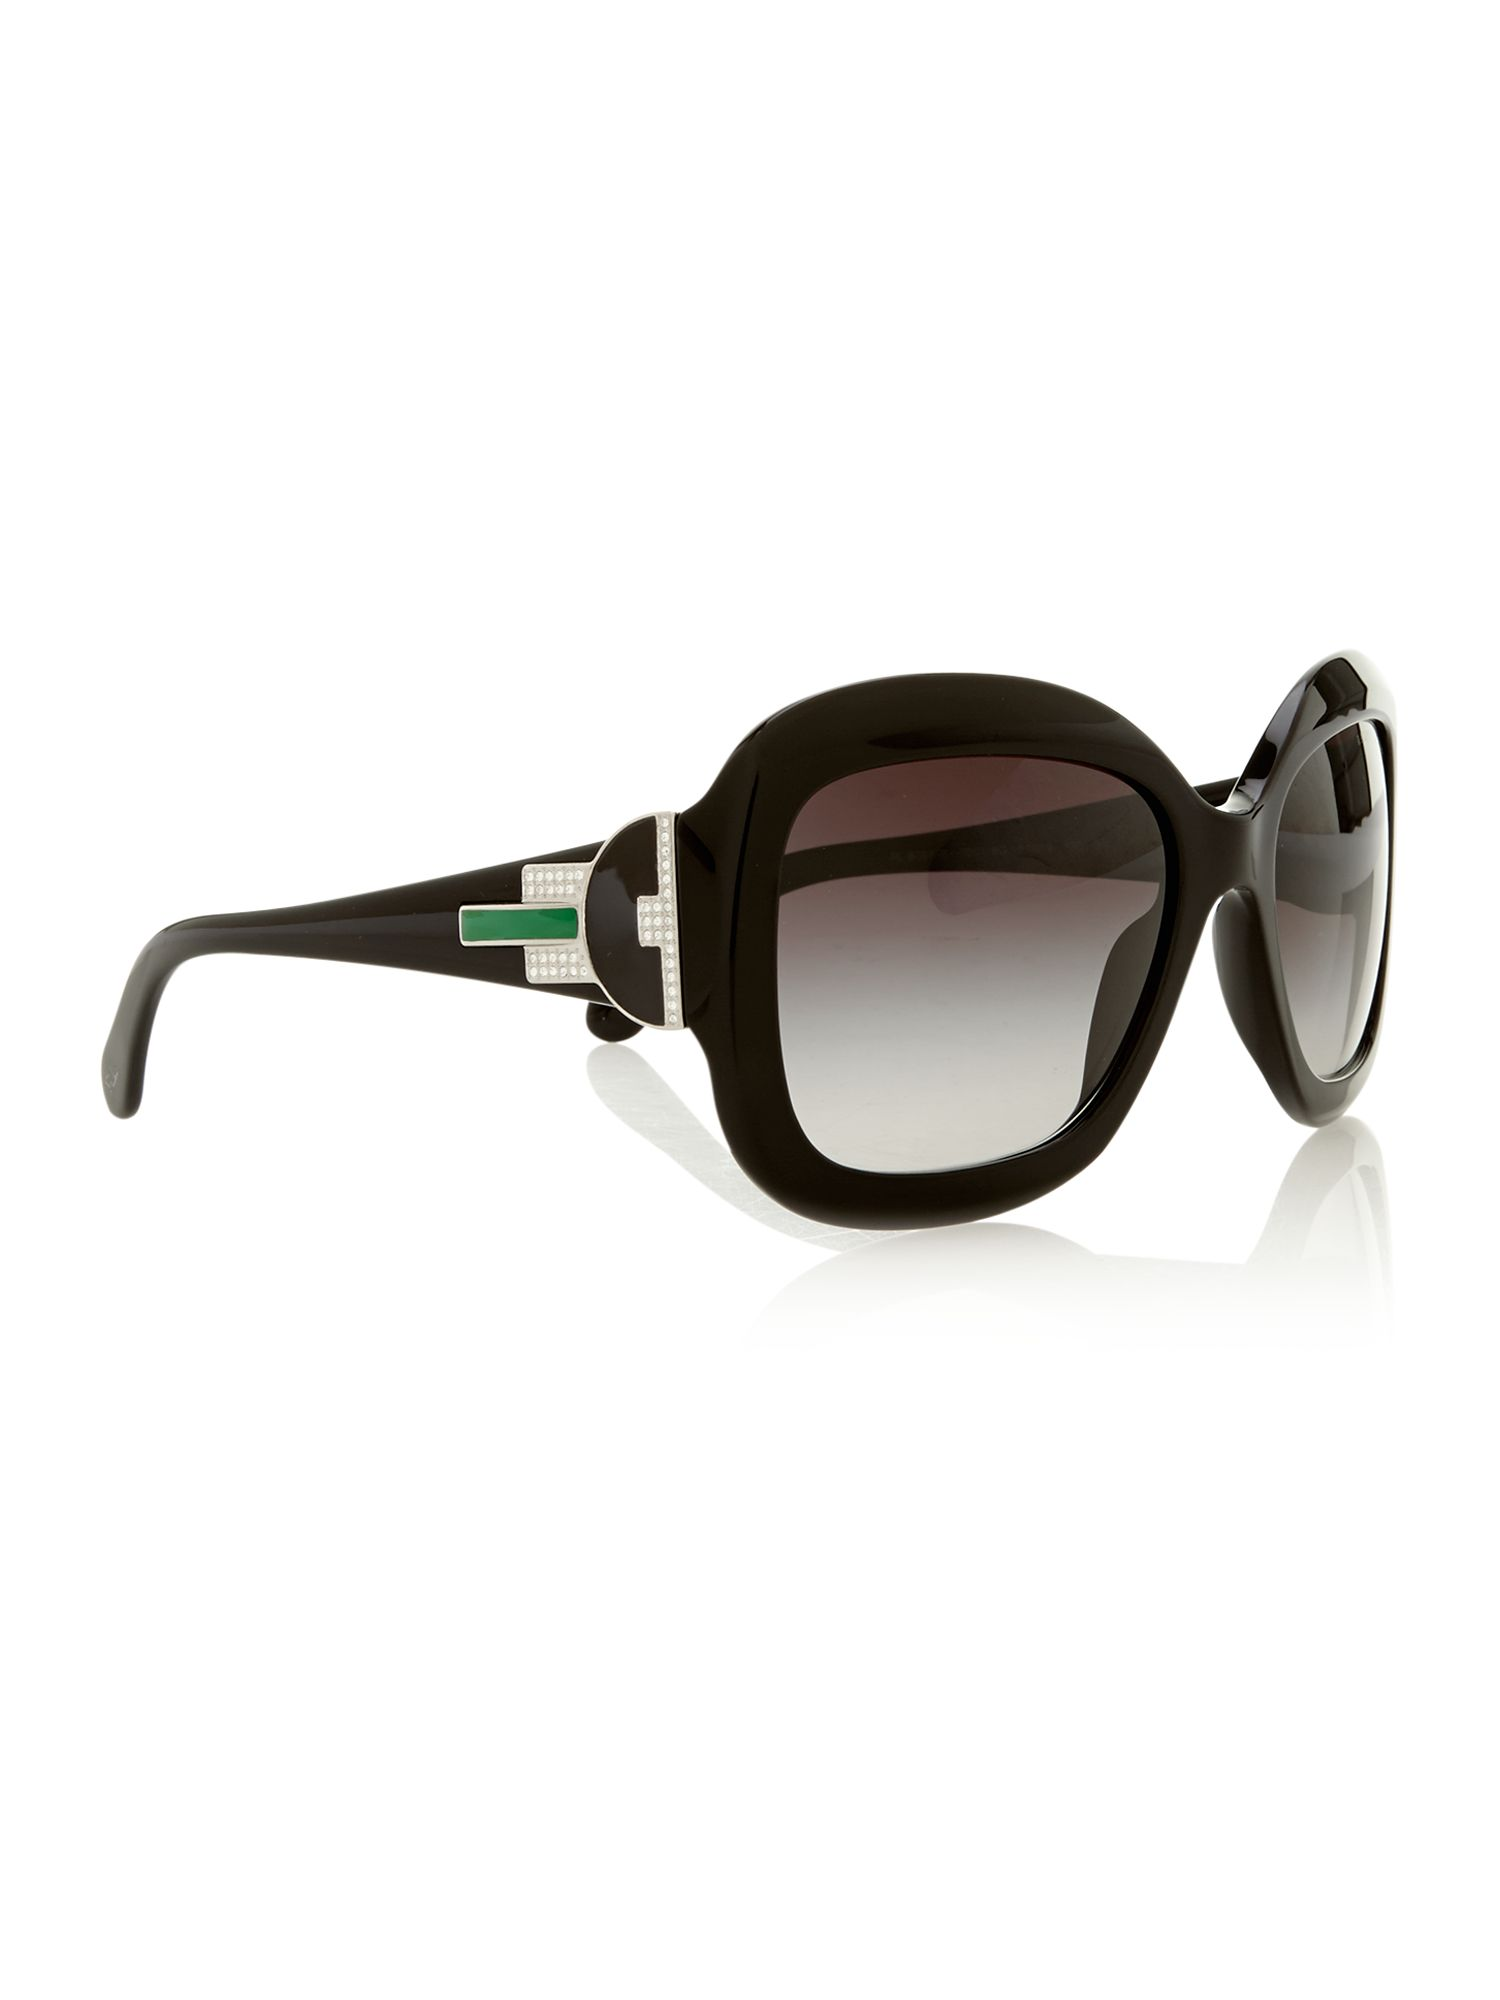 Ladies 8097 black square sunglasses